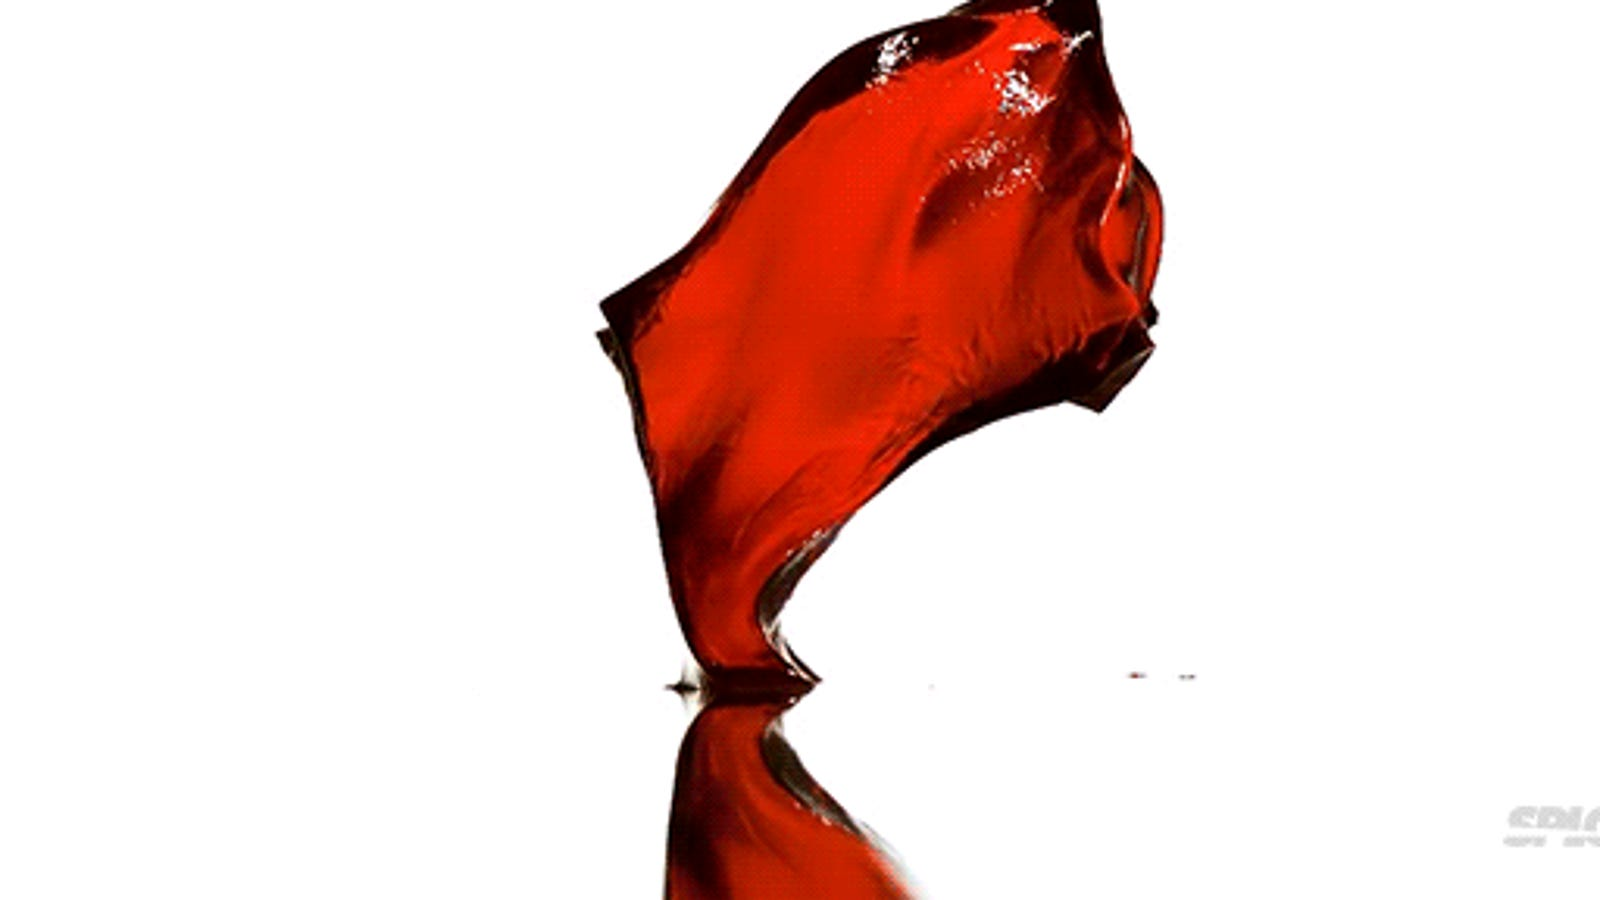 Watching Jell-O bounce in slow motion is strangely mesmerizing